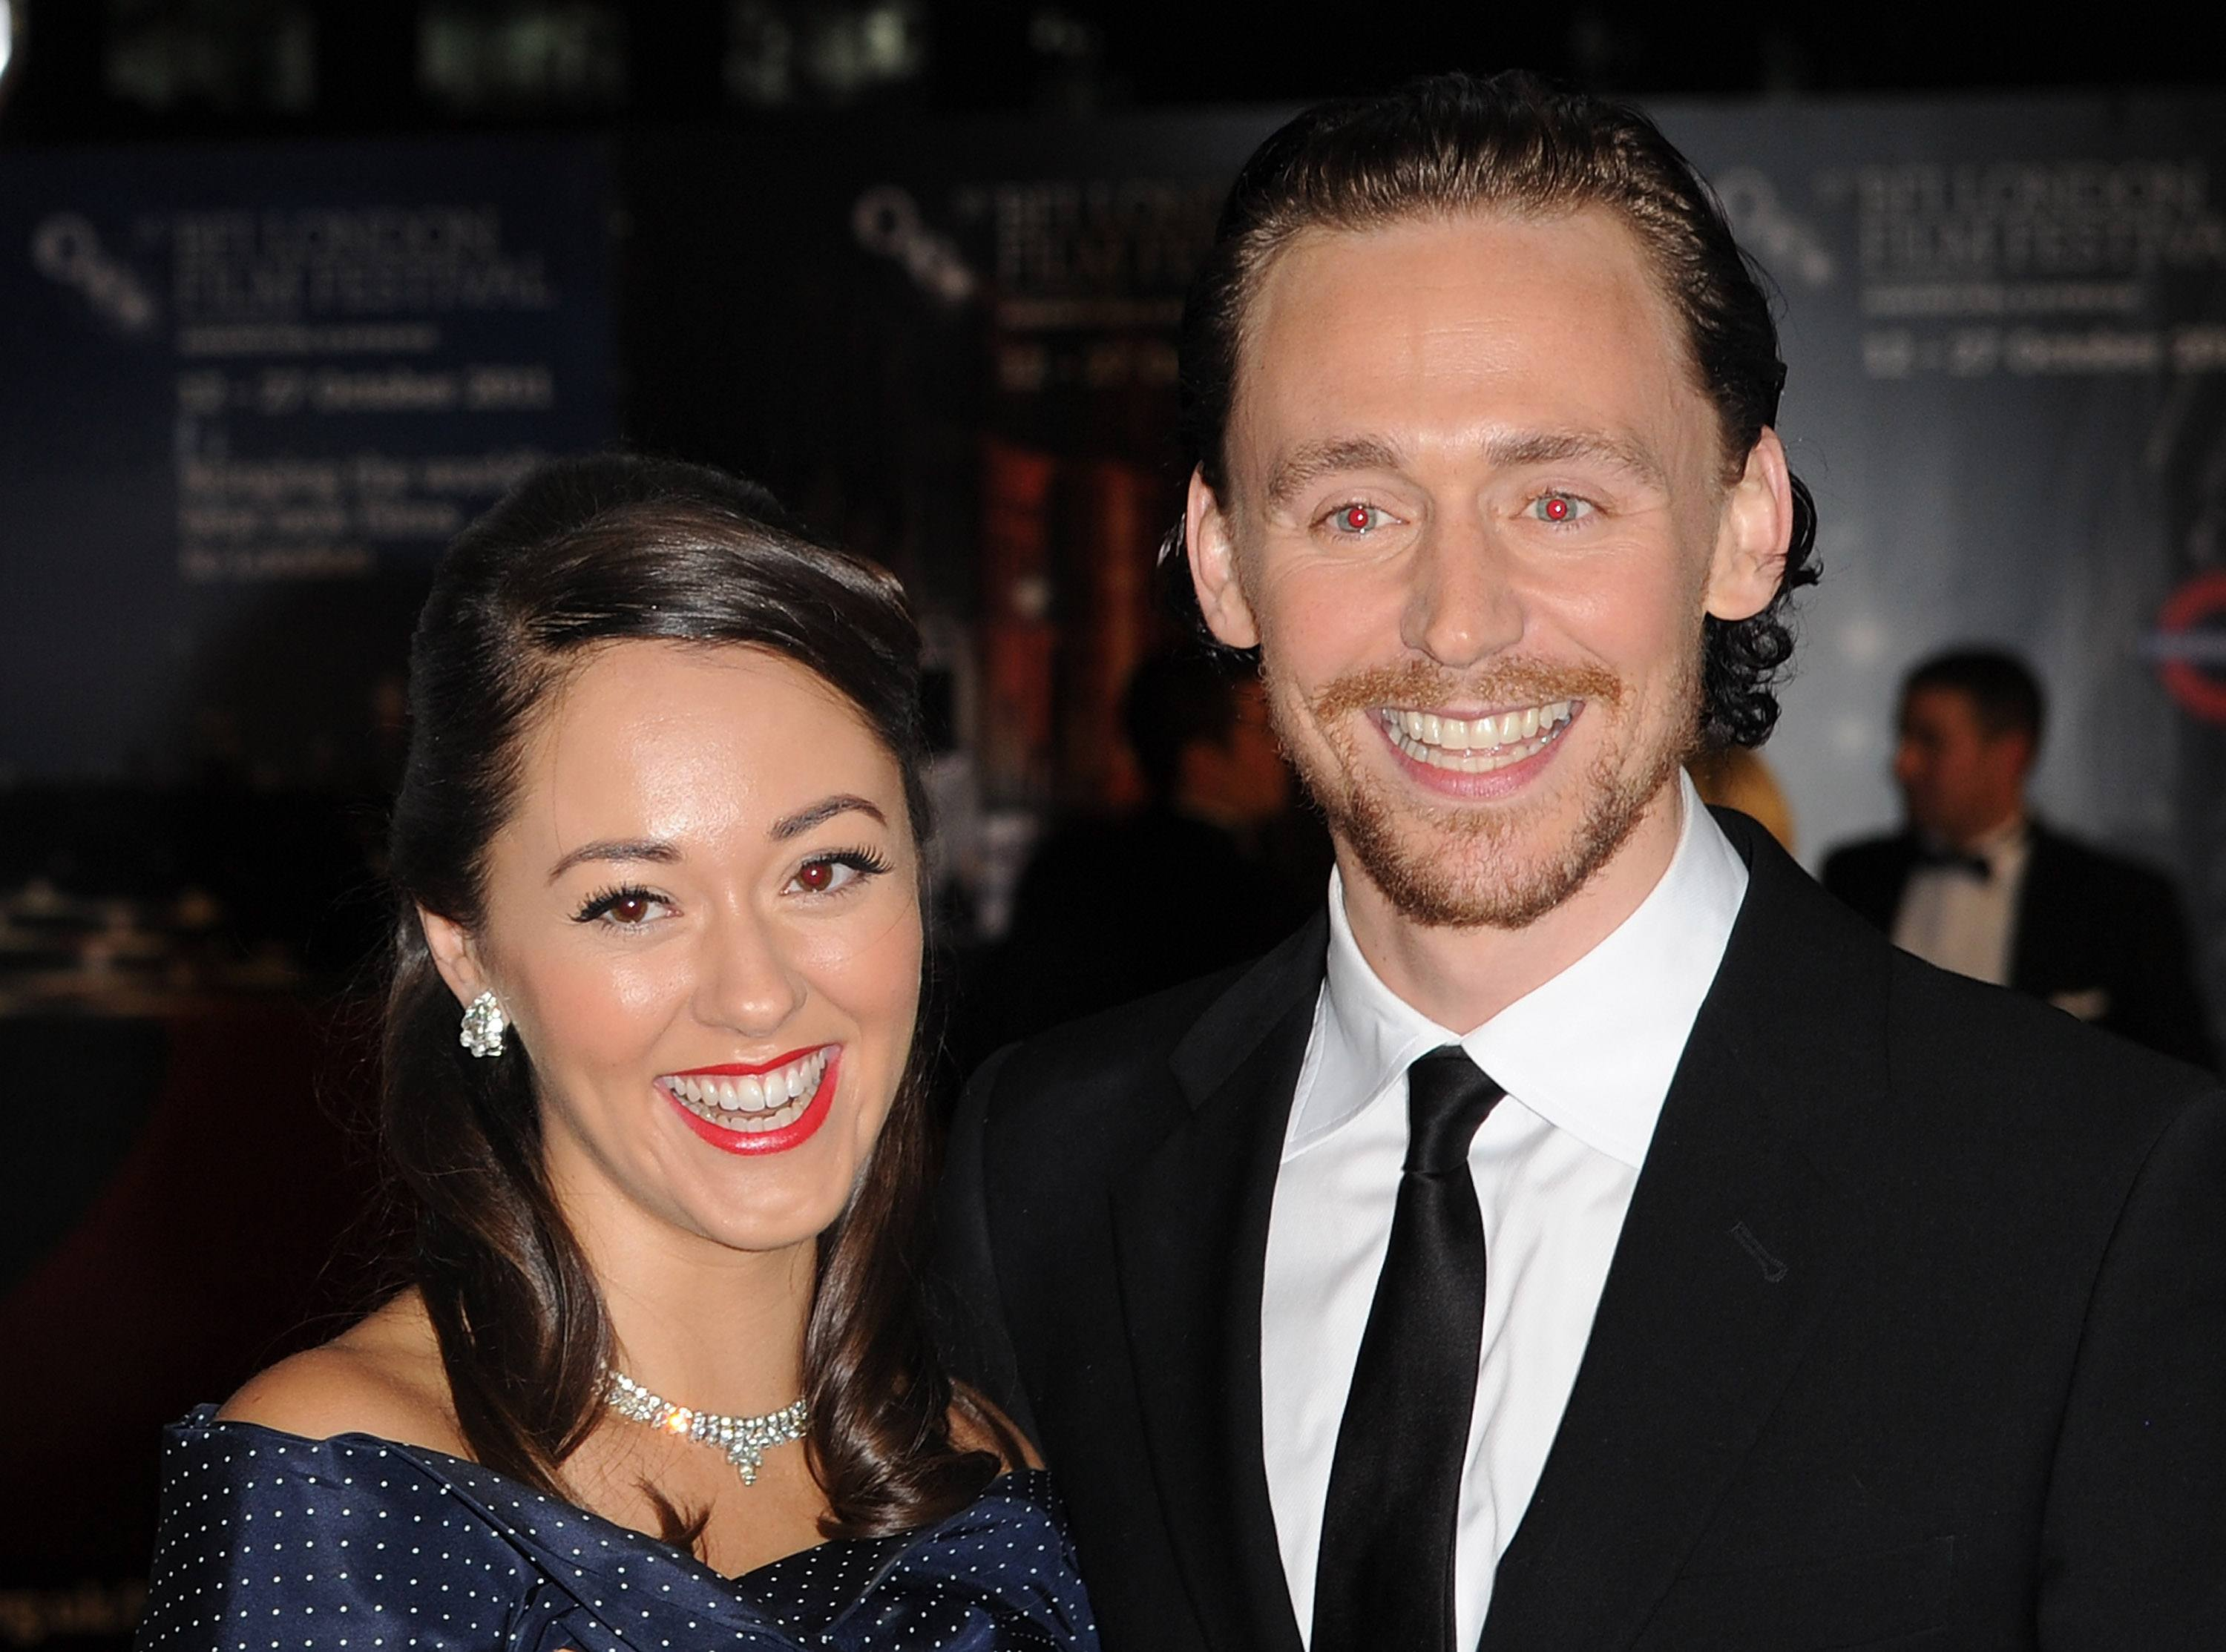 130628982 Marvel Actors And Their Real-Life Partners